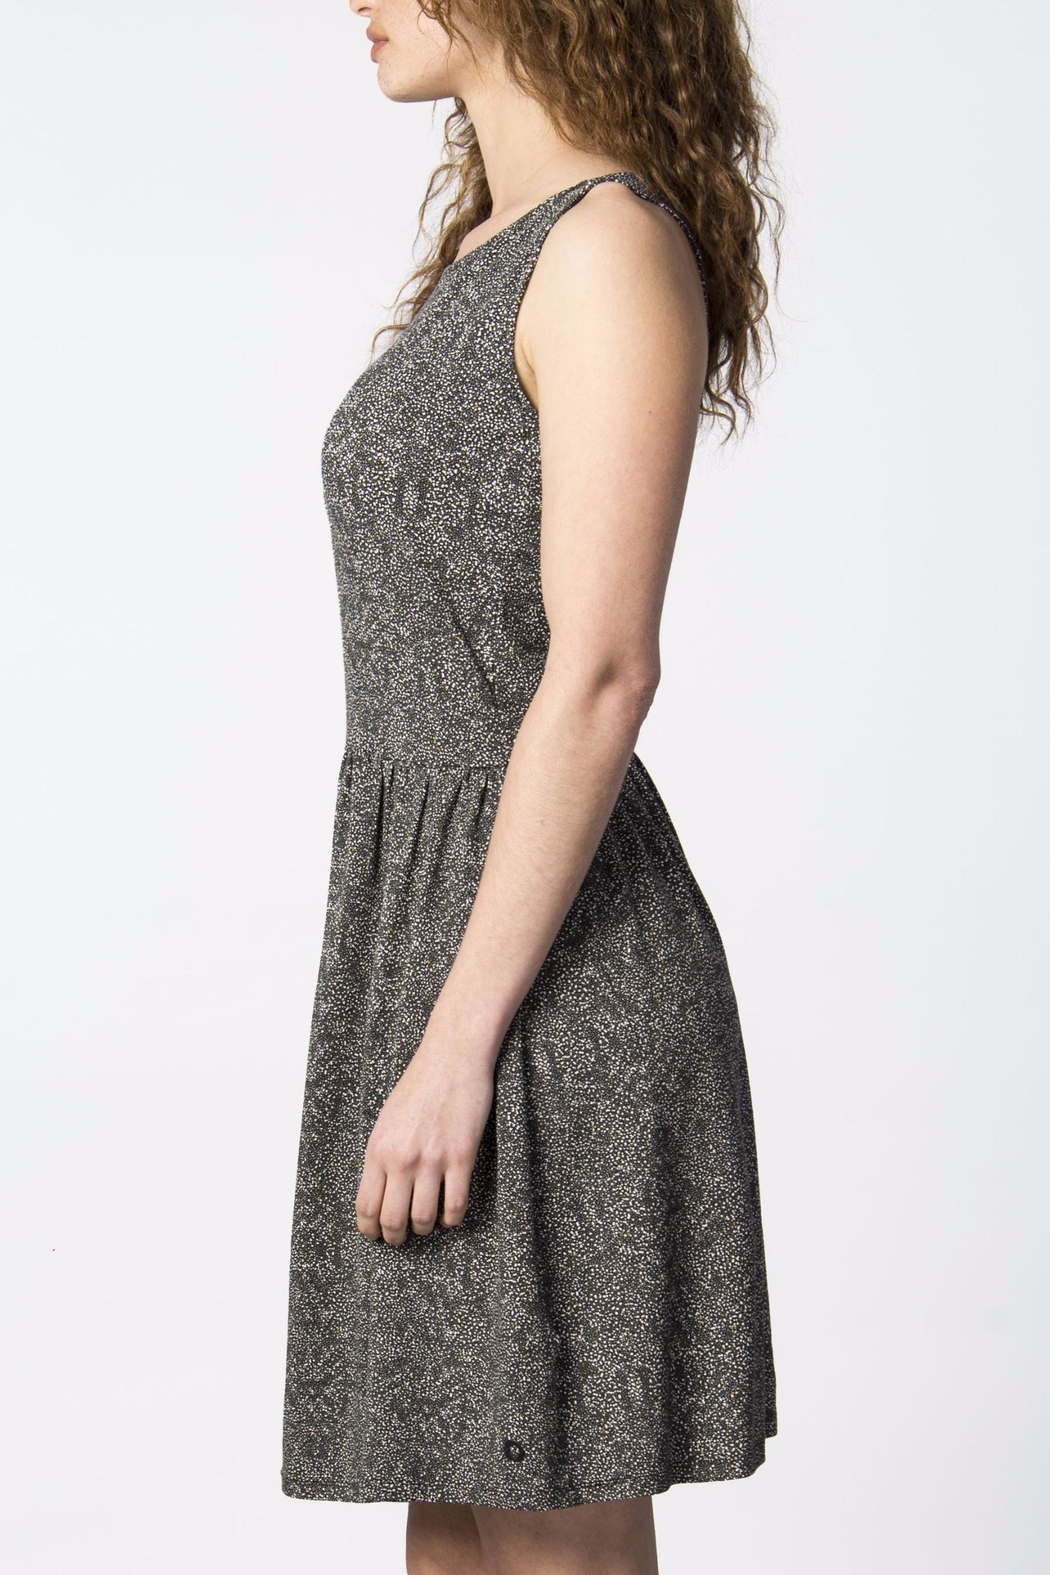 Skunkfunk Cross Back Dress - Side Cropped Image